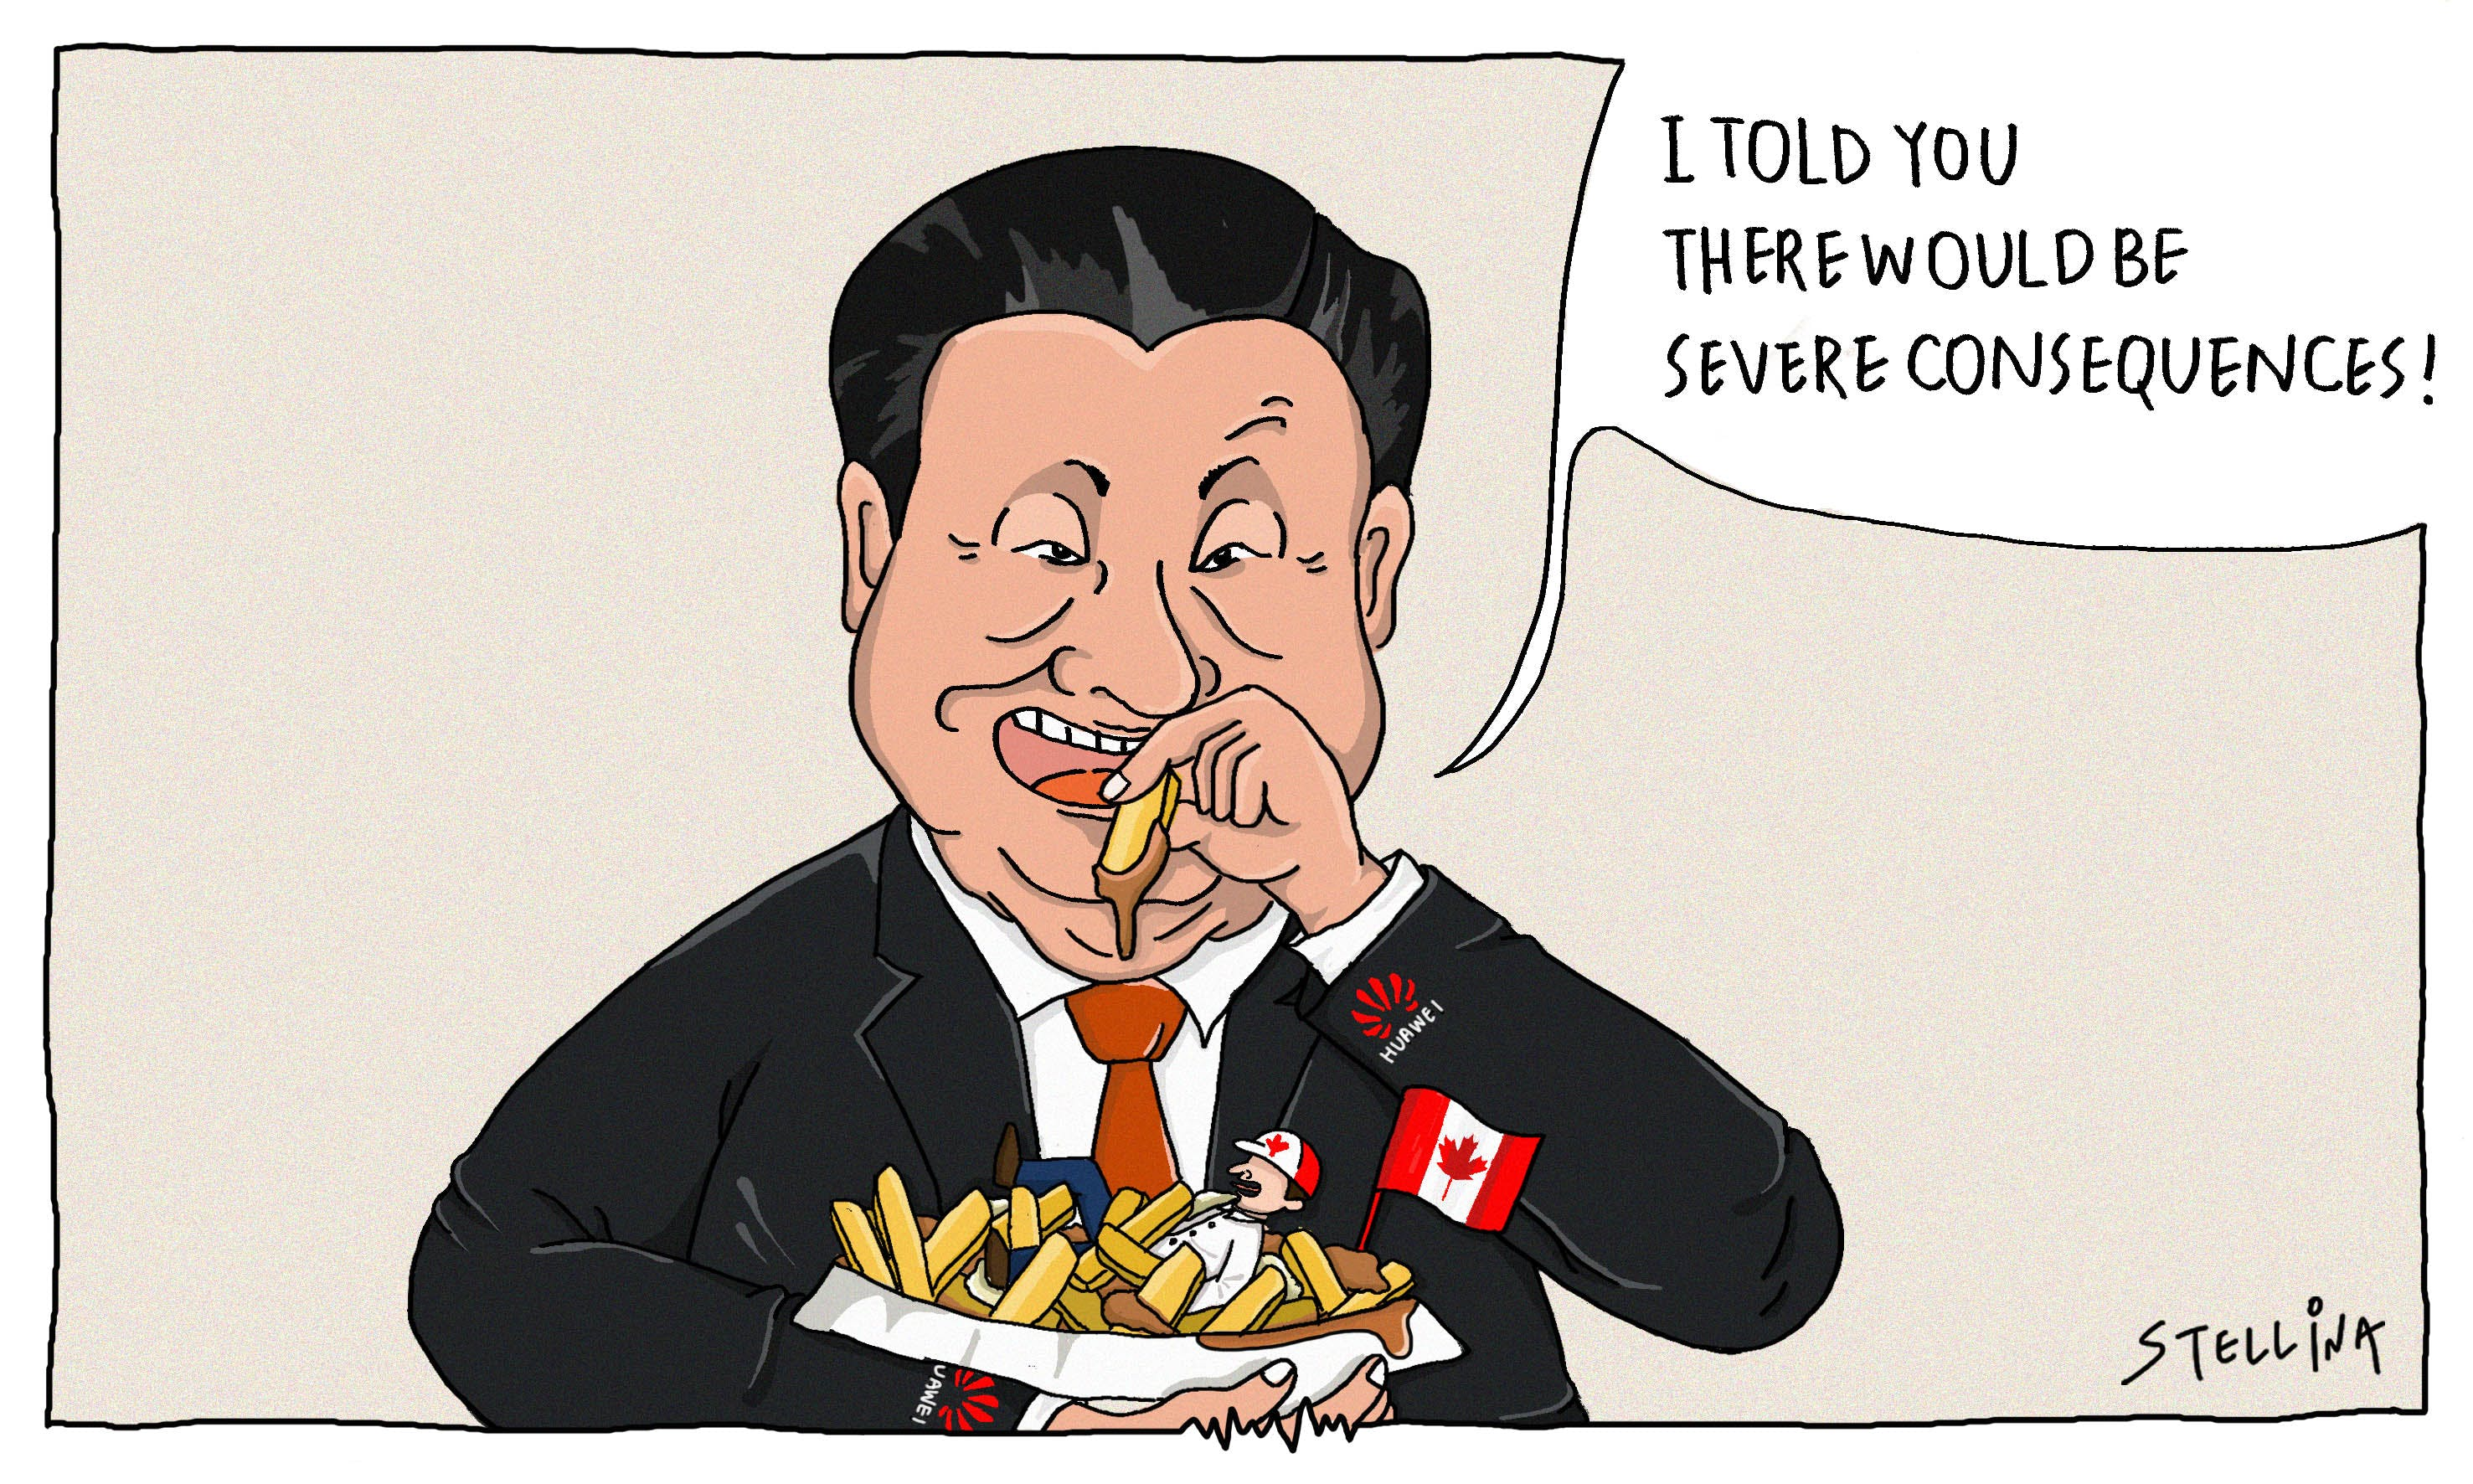 CARTOON: China Gets Carried 'Huawei' in Tit-for-Tat Canadian Retaliation